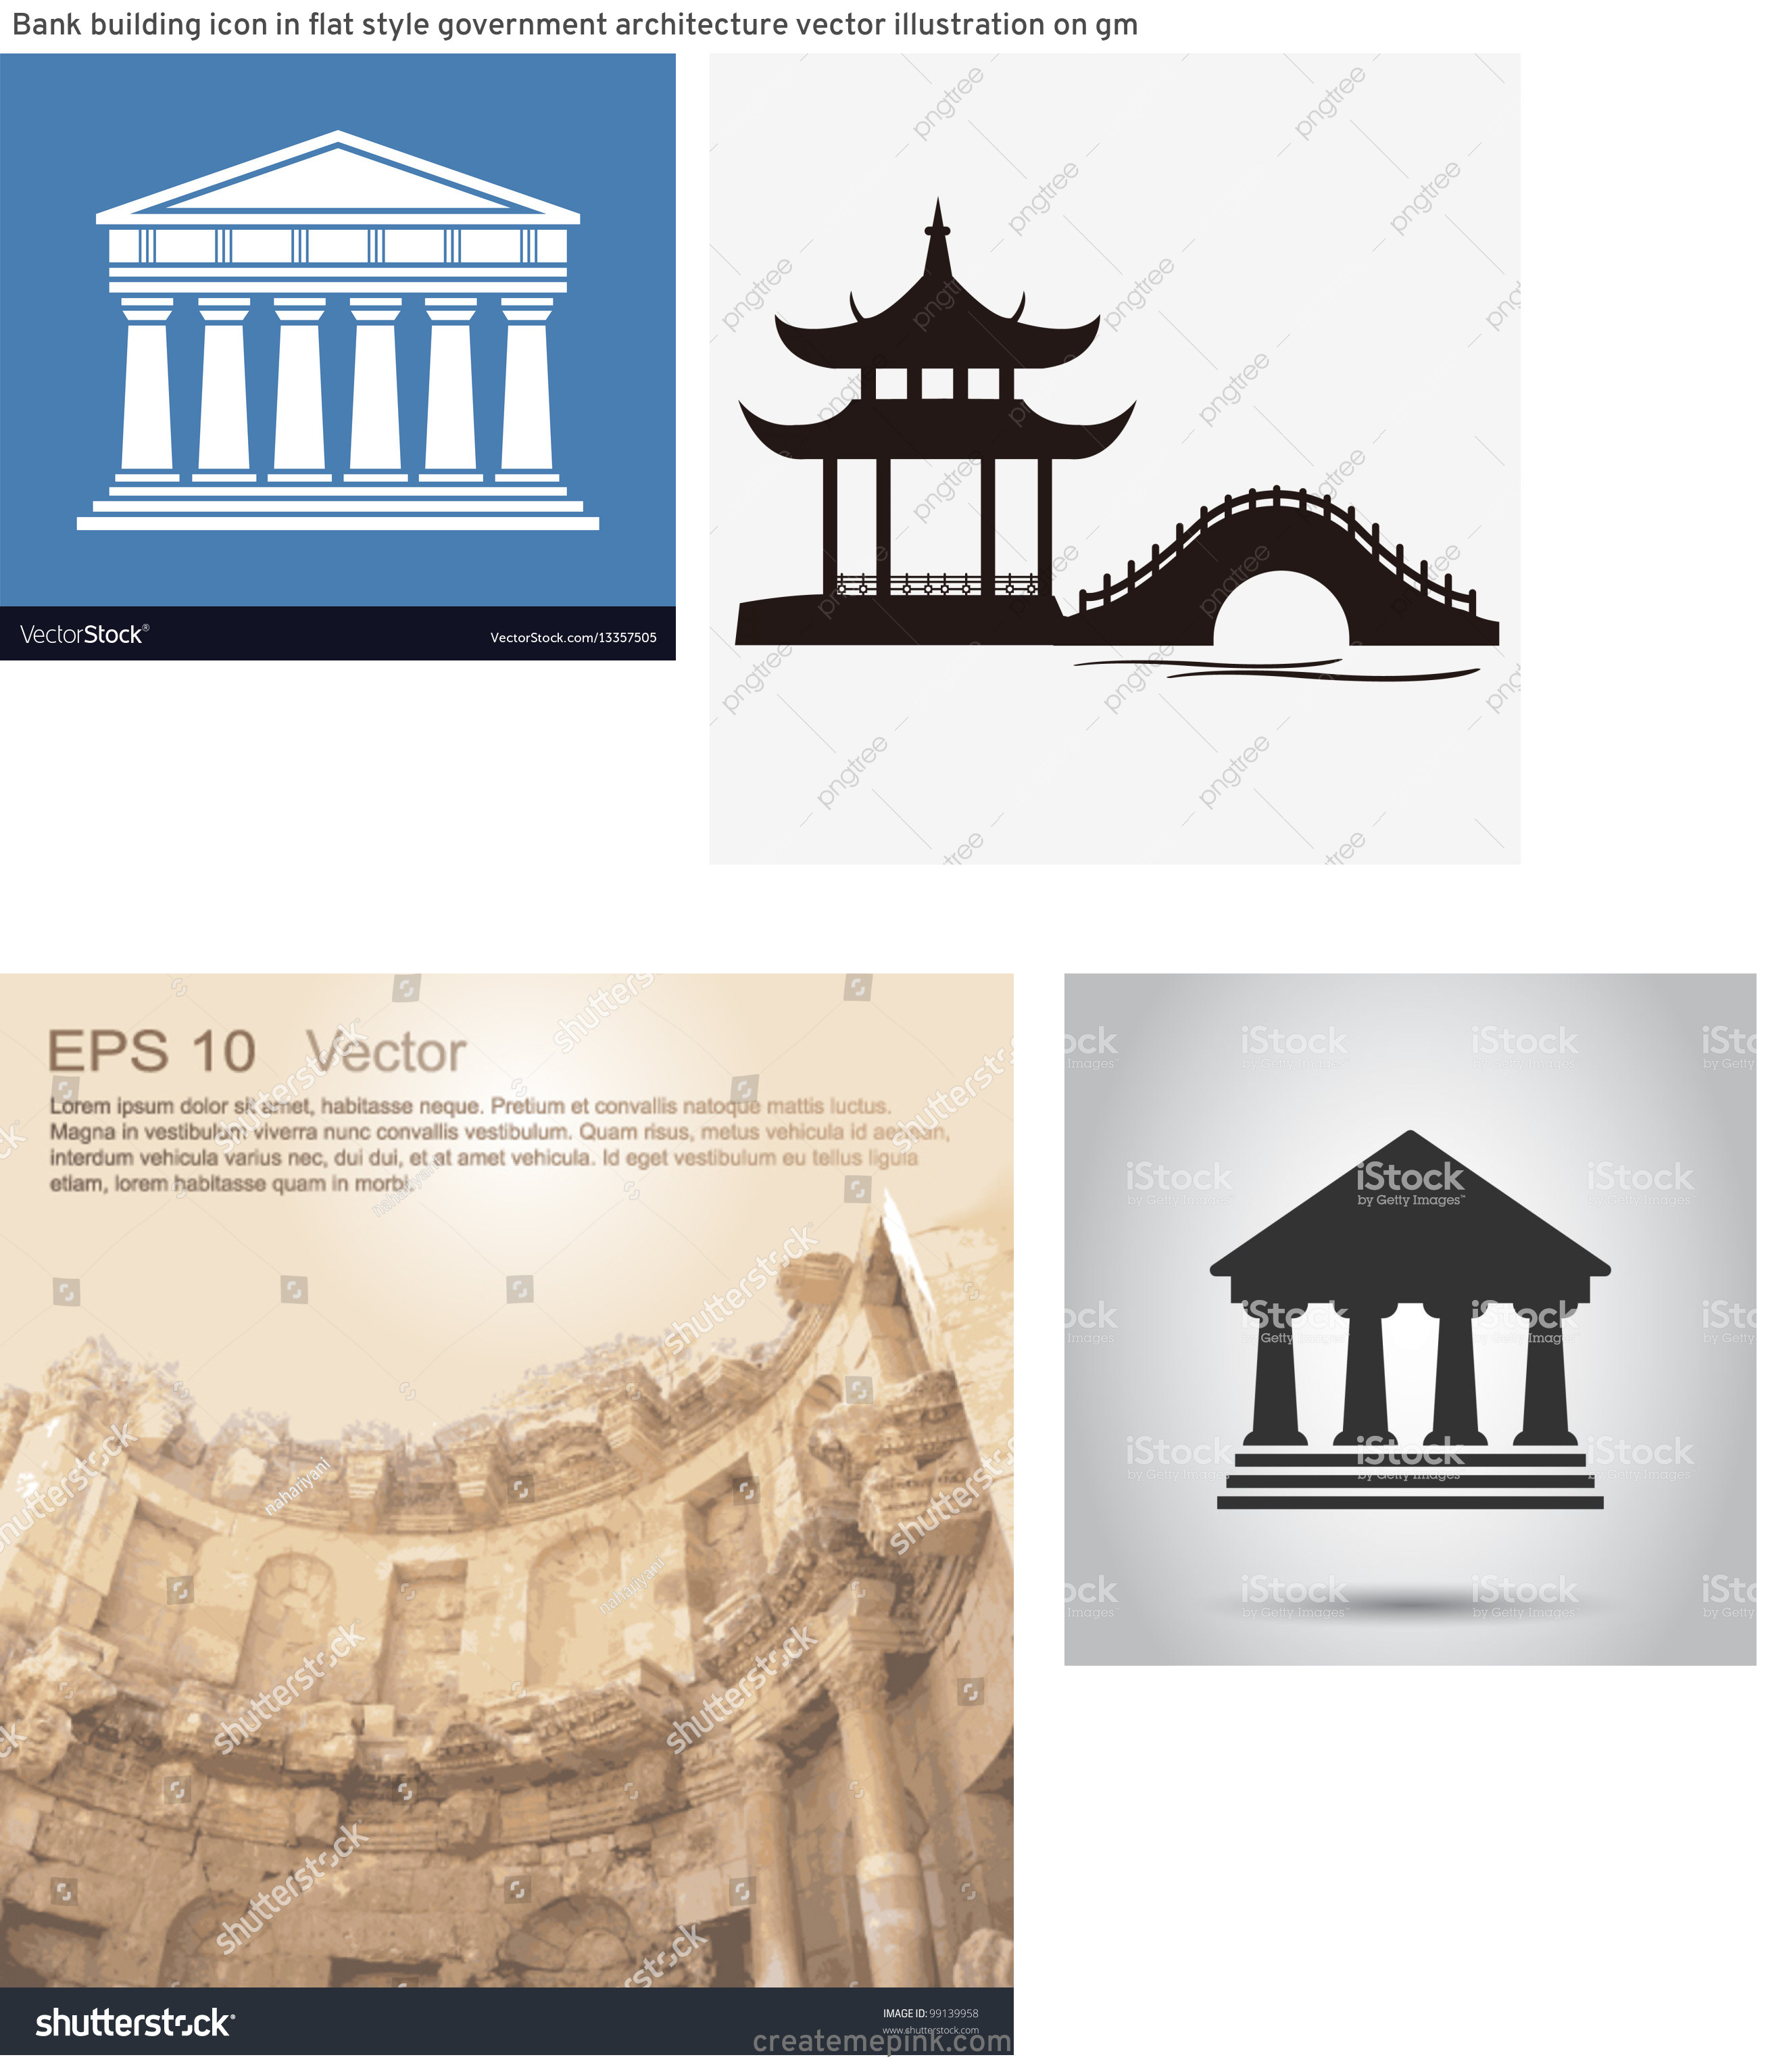 Ancient Architecture Vector: Bank Building Icon In Flat Style Government Architecture Vector Illustration On Gm